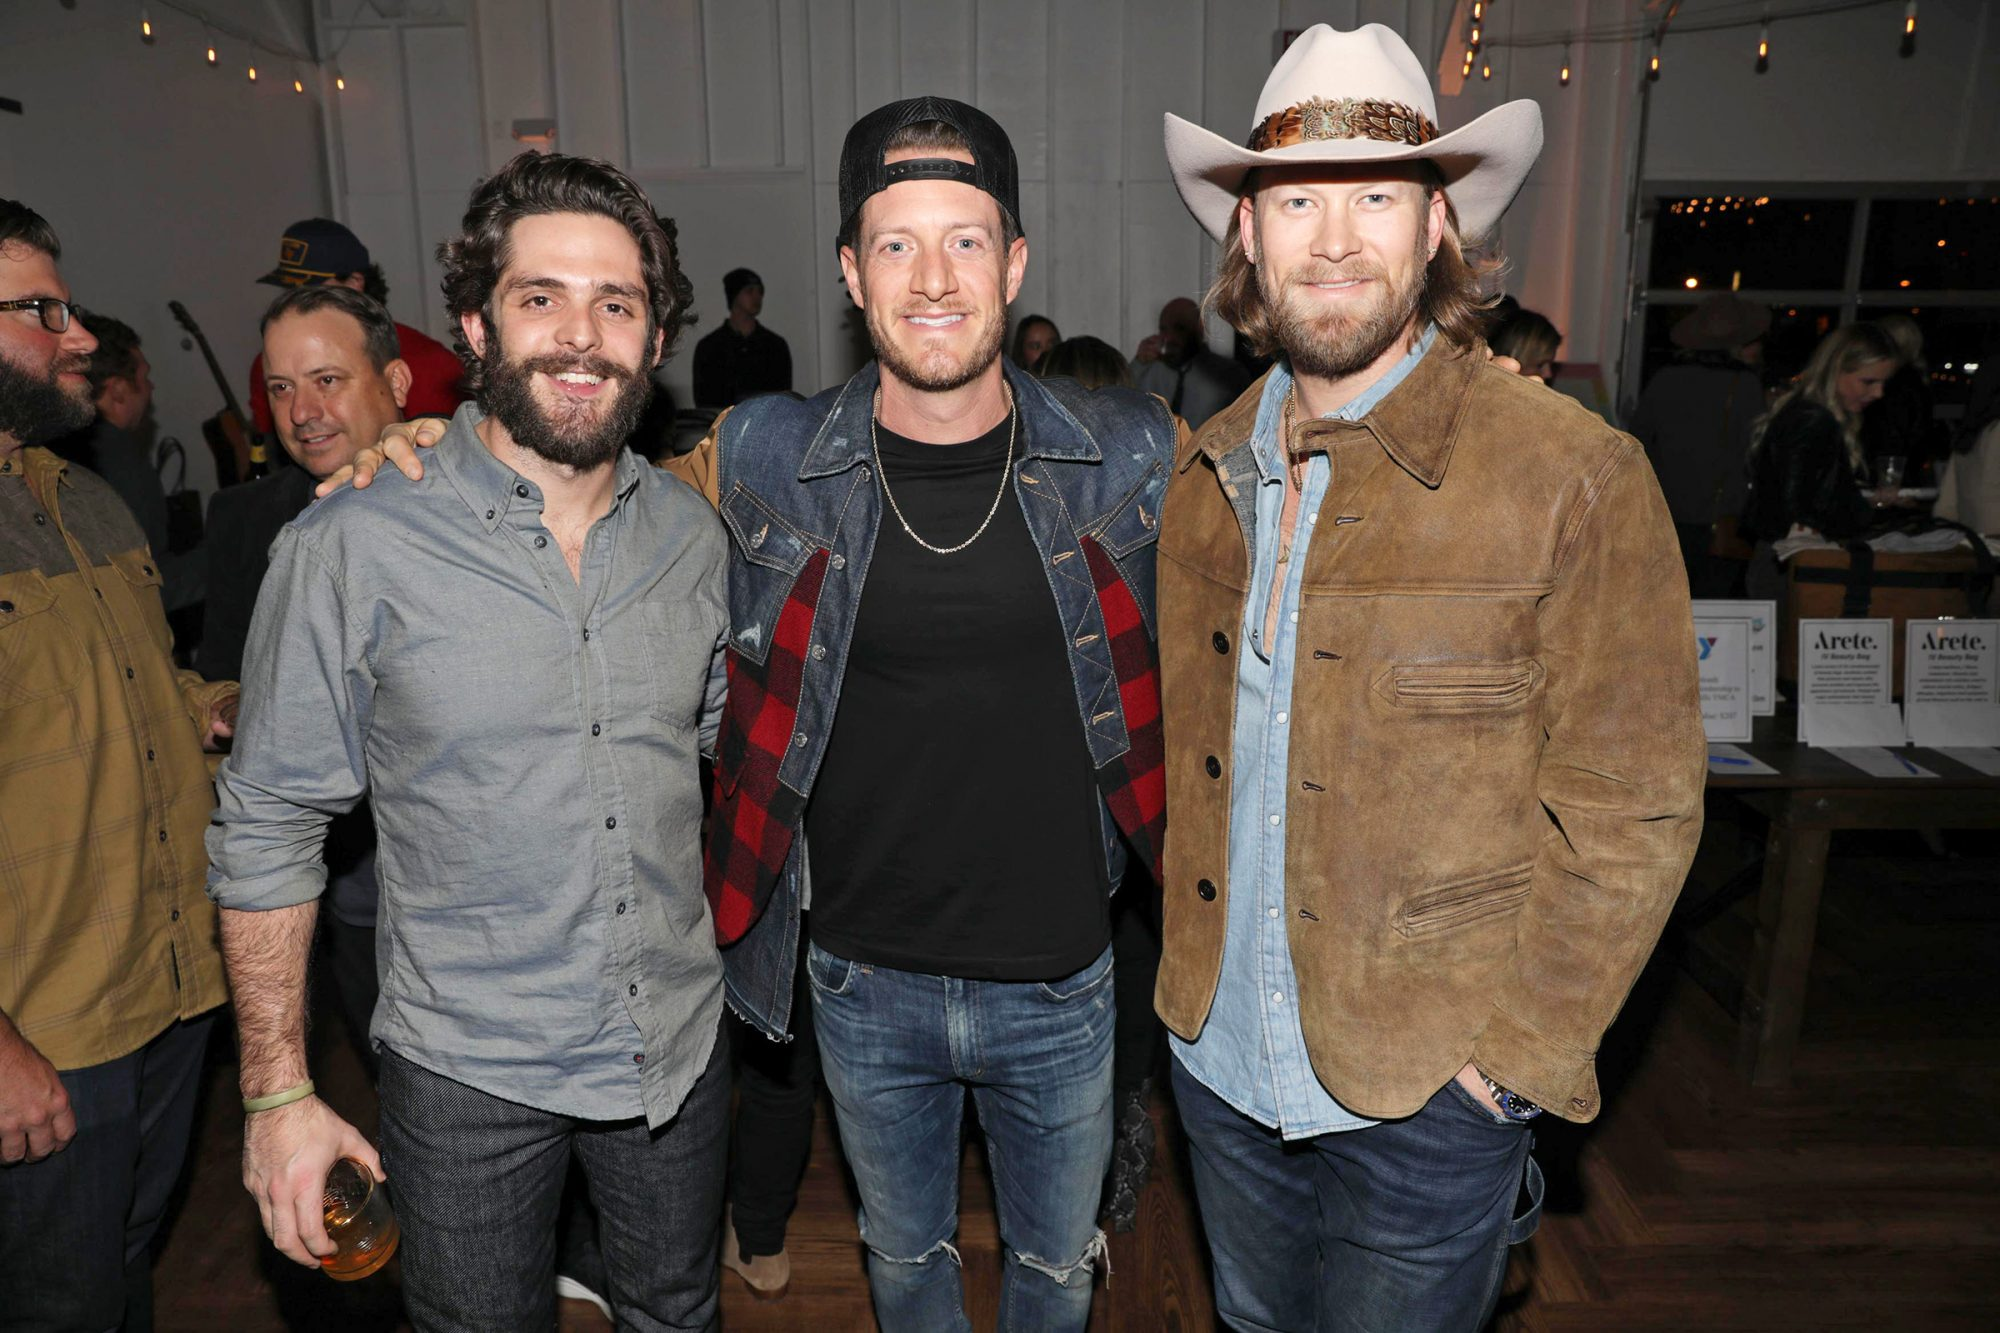 Nashville, TN. November 18, 2019. Thomas Rhett, Tyler Hubbard, Brian Kelley at Miracle on 4th fundraiser benefitting Home Street Home Ministries.